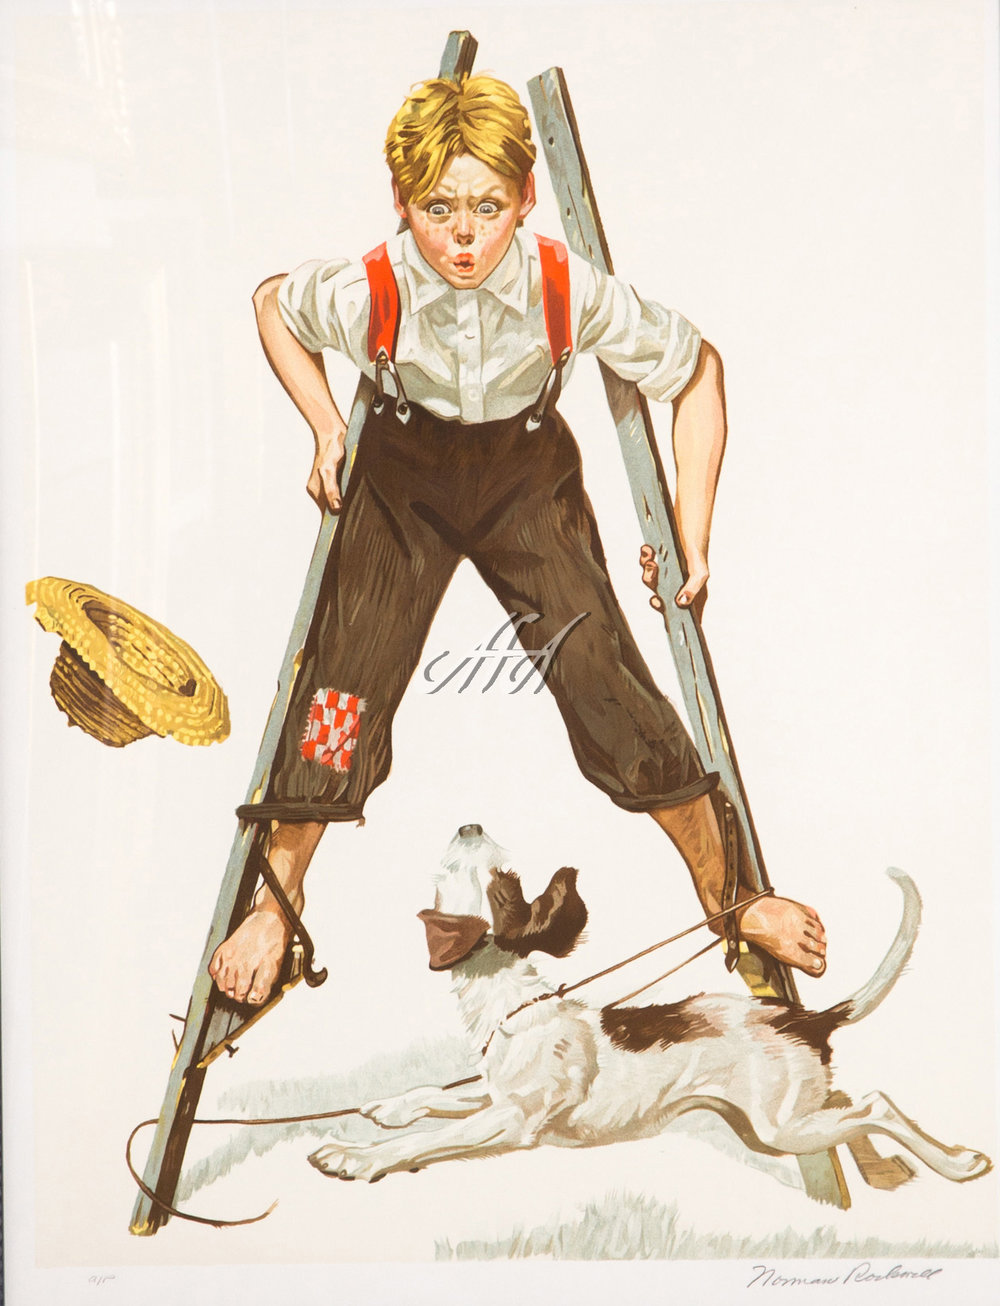 Norman_Rockwell_boy_on_stilts LoRes watermark.jpg